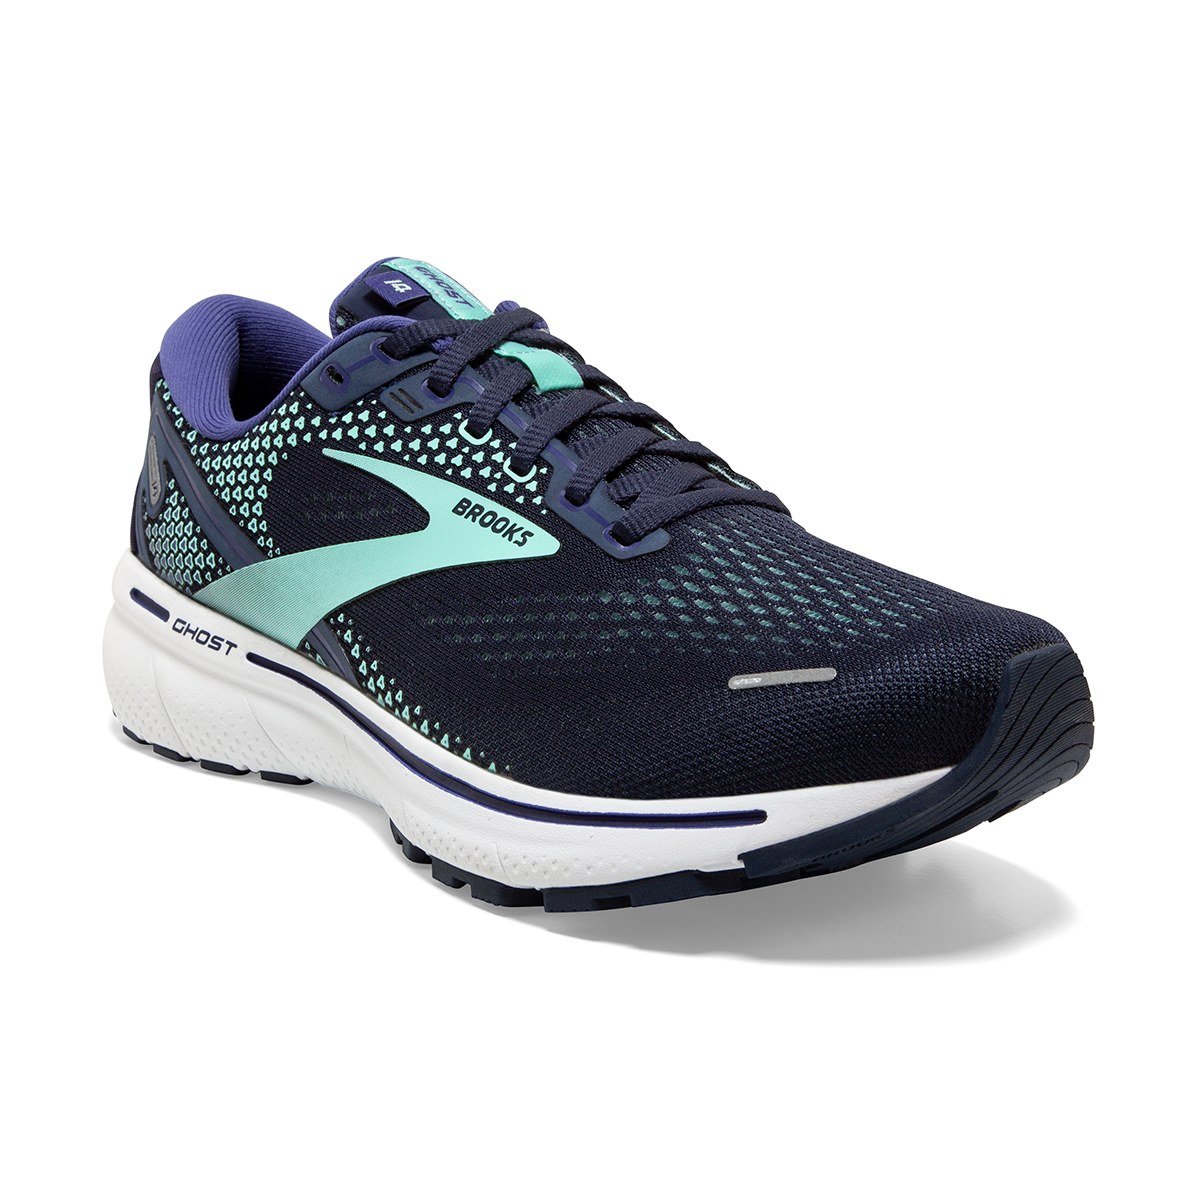 Women's Brooks Ghost 14 Running Shoe - Color: Peacoat/Yucca - Size: 5 - Width: Regular, Peacoat/Yucca, large, image 5